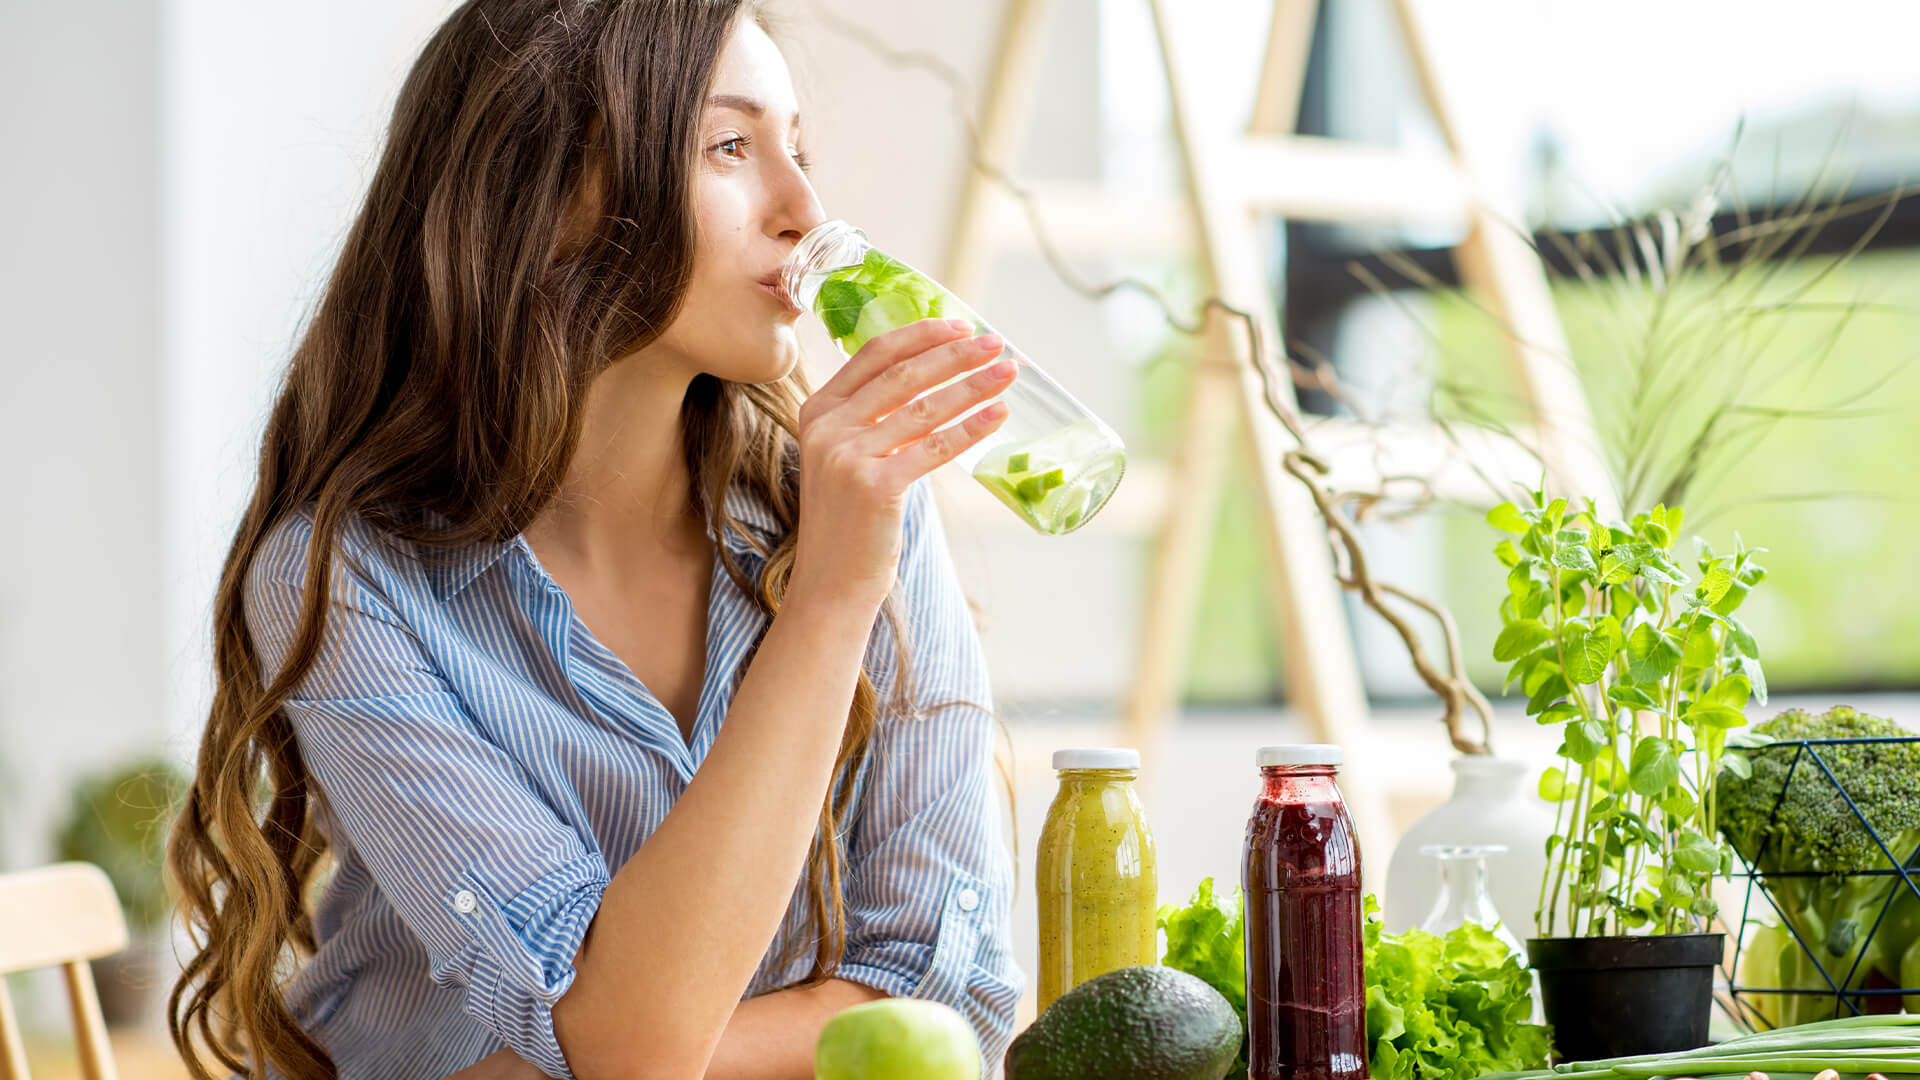 5 Most Healthiest Low Calorie Bottled Drinks You Should Try